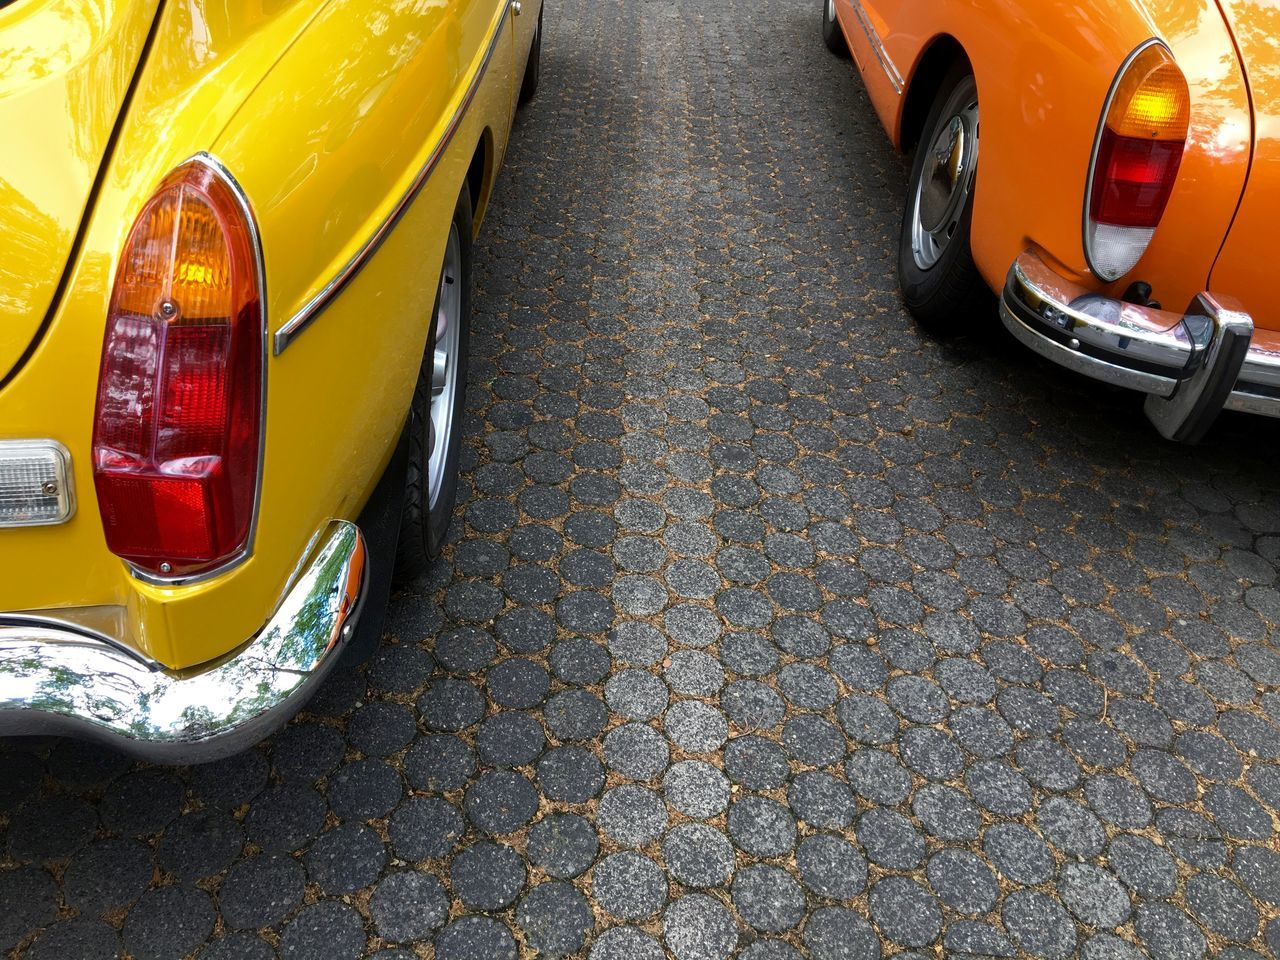 two is better than one :) Automobile Berlinstagram Bright Colors Car Cars Couple Couples Karmann Ghia MG  Old Cars Oldtimer Orange Parking Street Streetphotography Taillights Two Is Better Than One Urbanphotography Vintage Cars Yellow